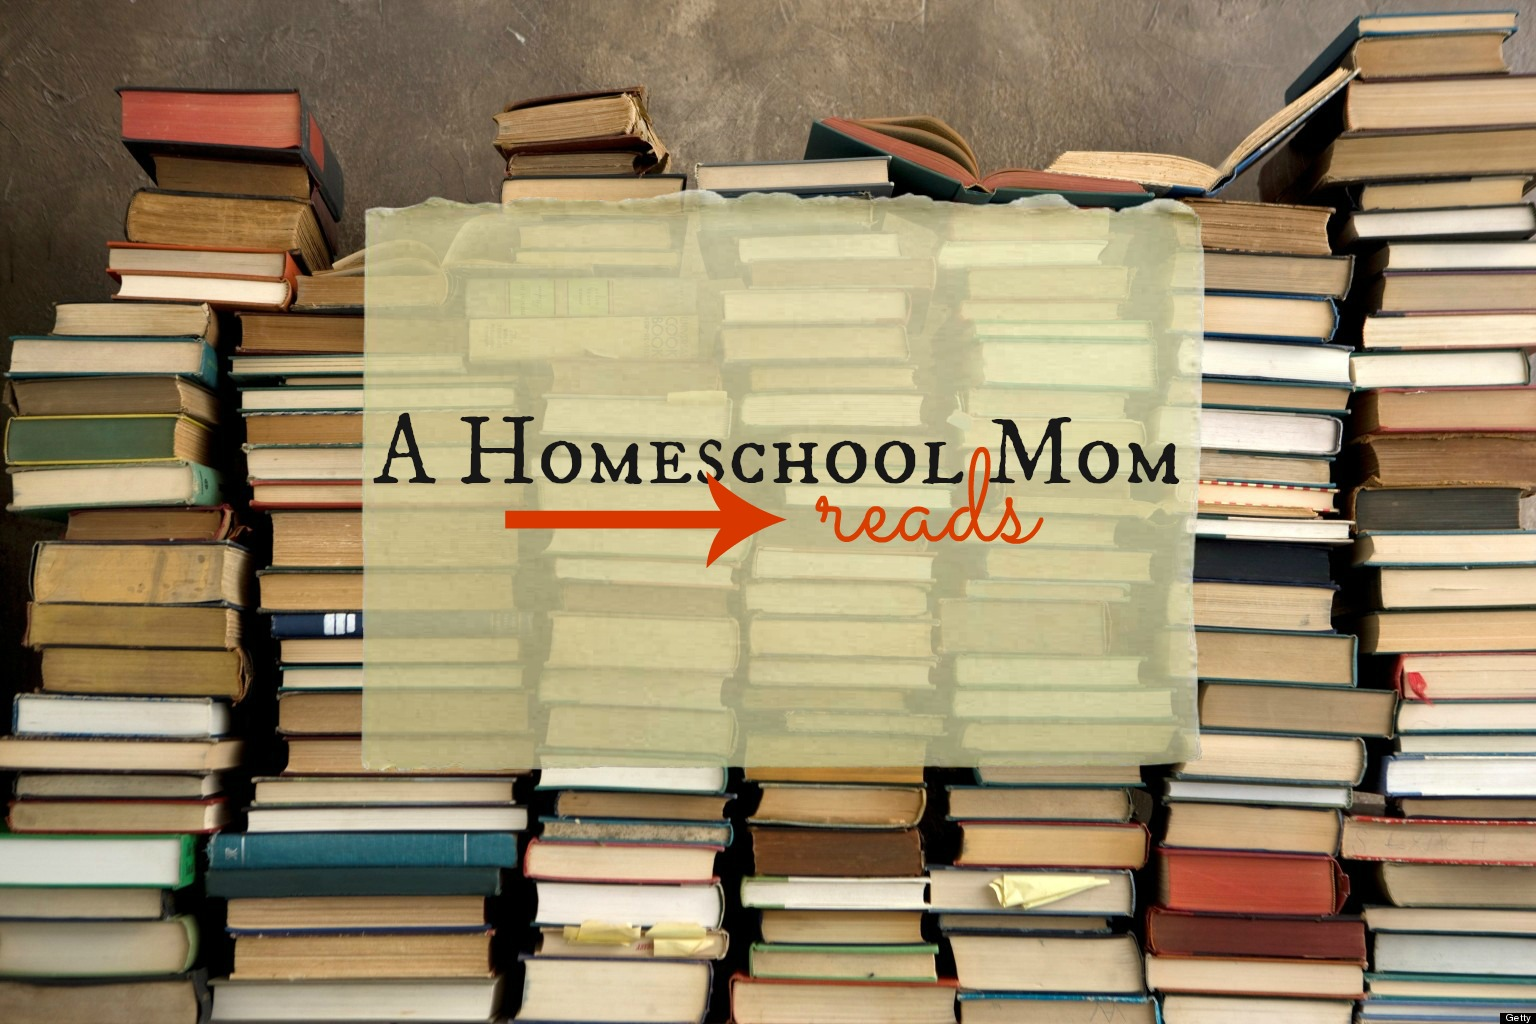 A Homeschool Mom Reads: 2017 Reading List and January Books